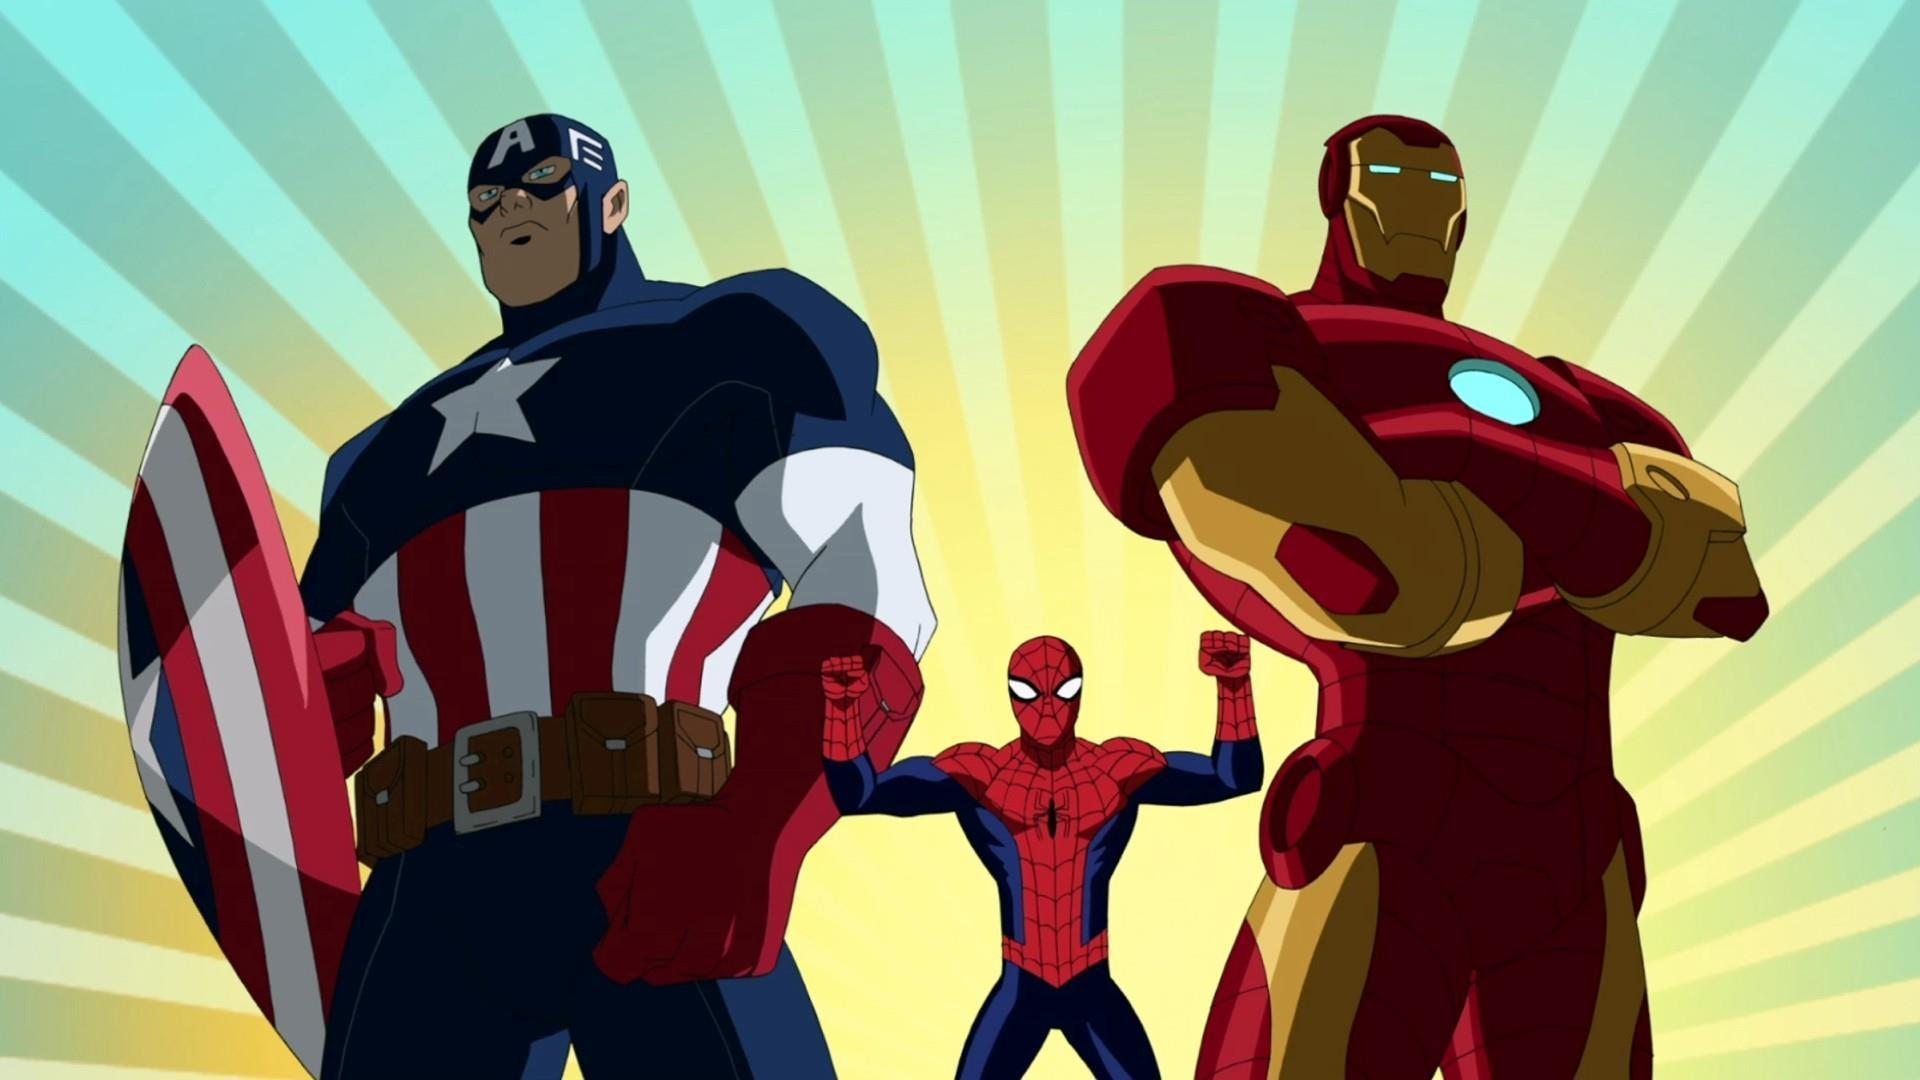 cartoons-captain-america-spider-man-and-iron-man-wallpaper-HD